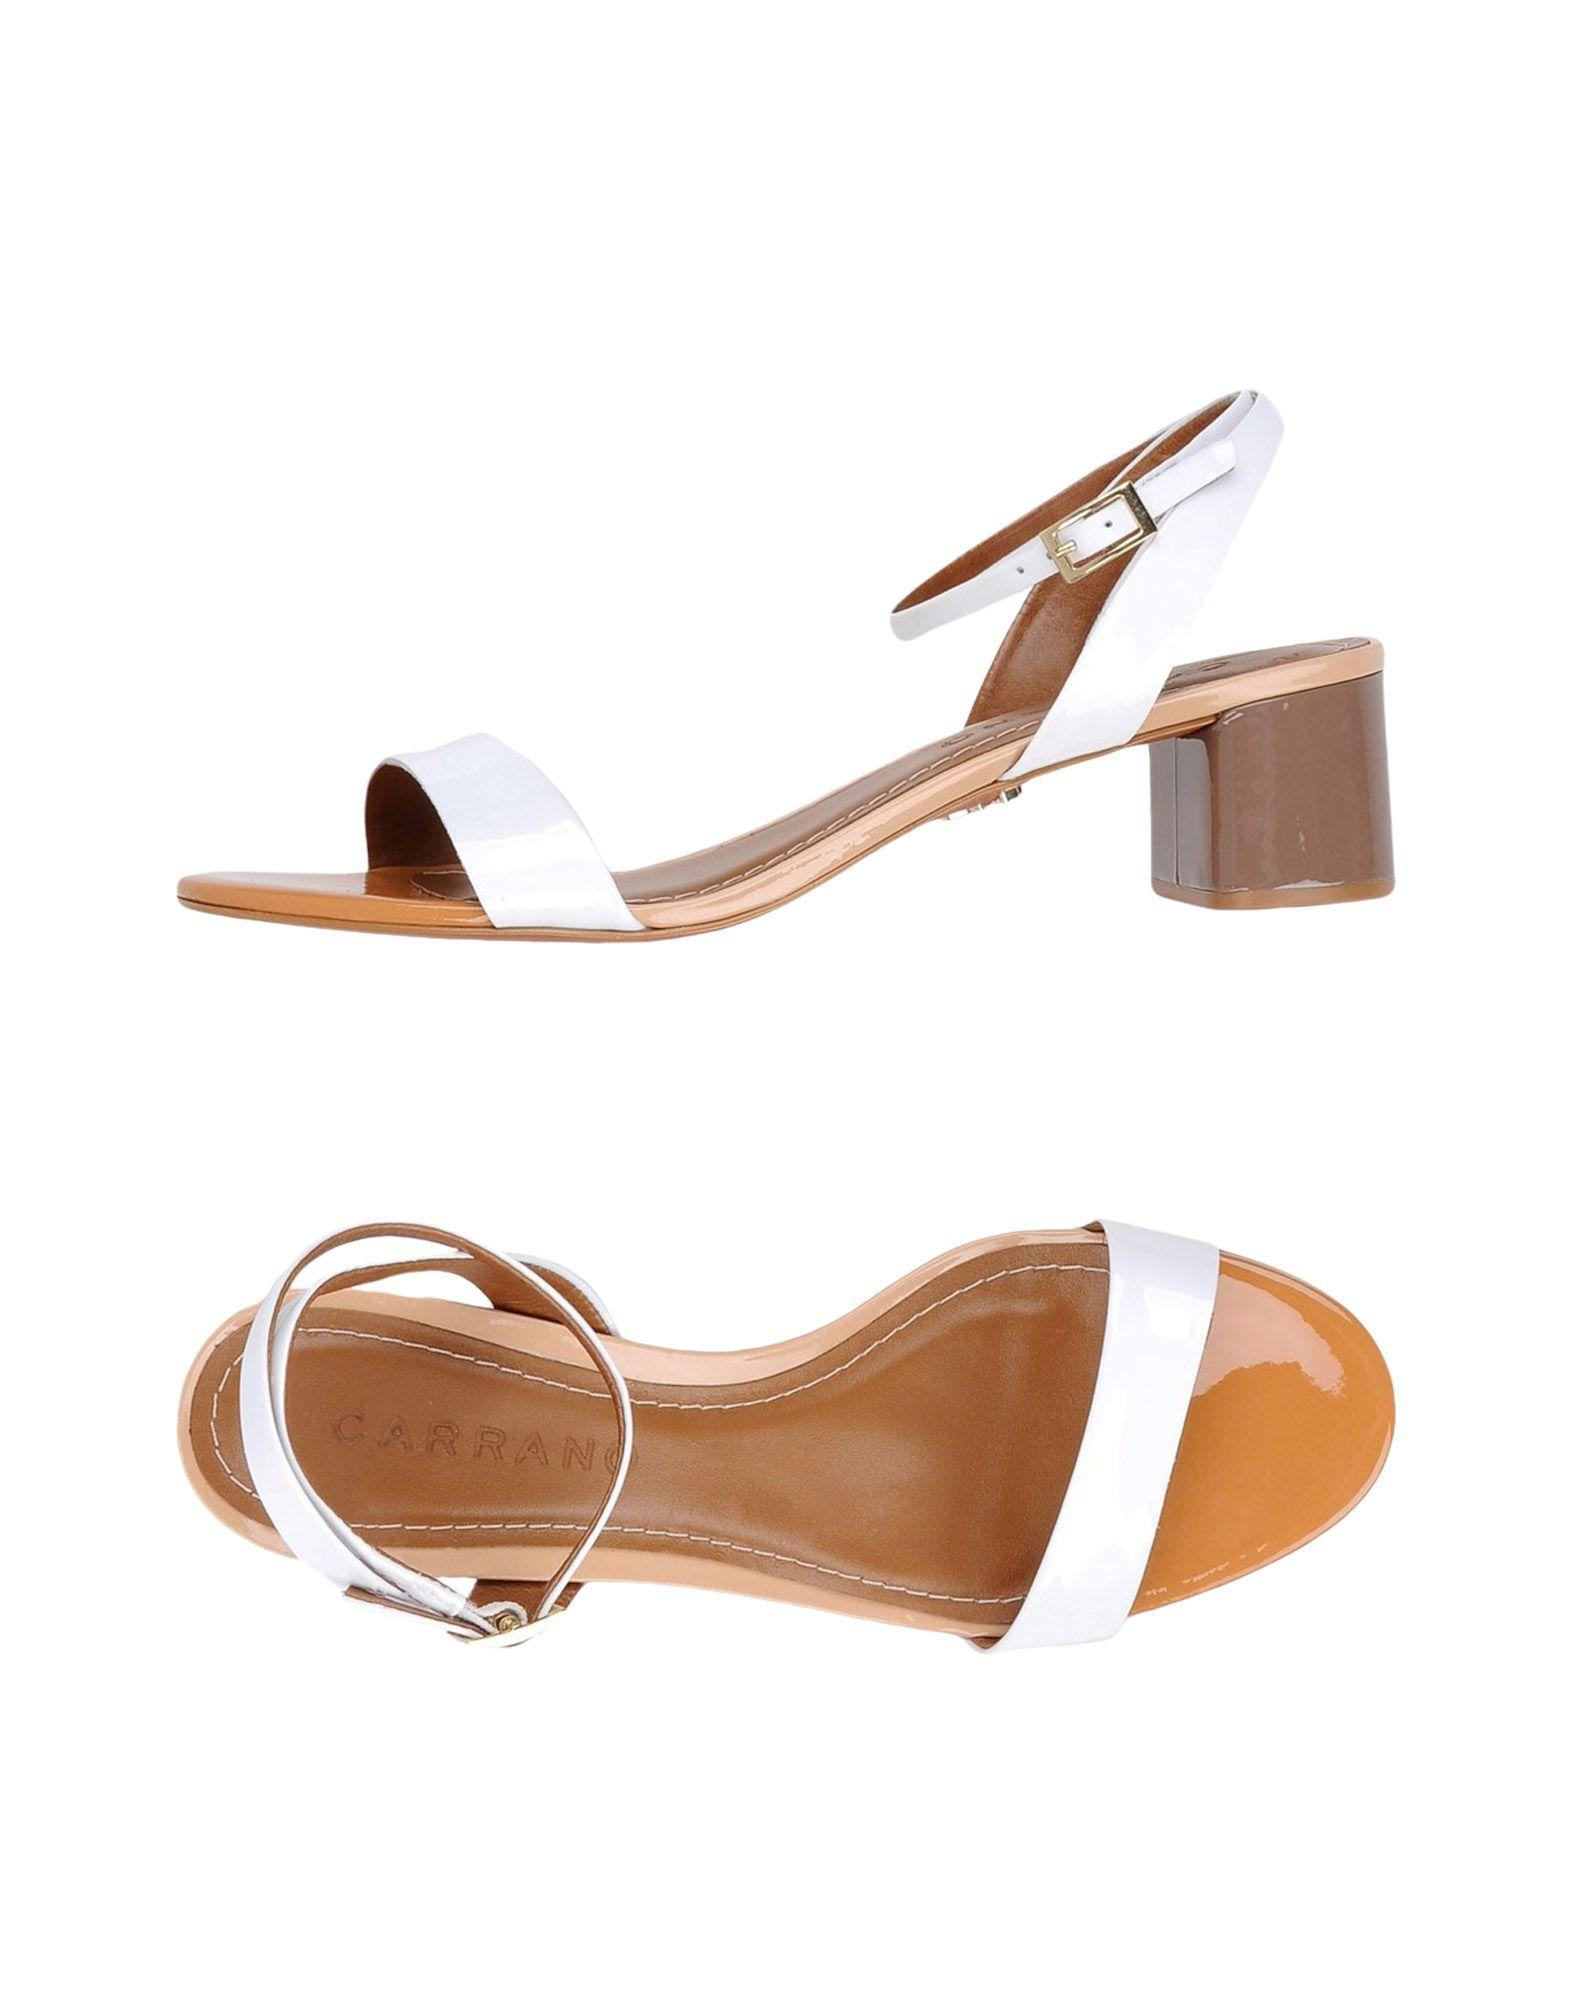 02033037d45a6 CARRANO Sandals. varnished effect